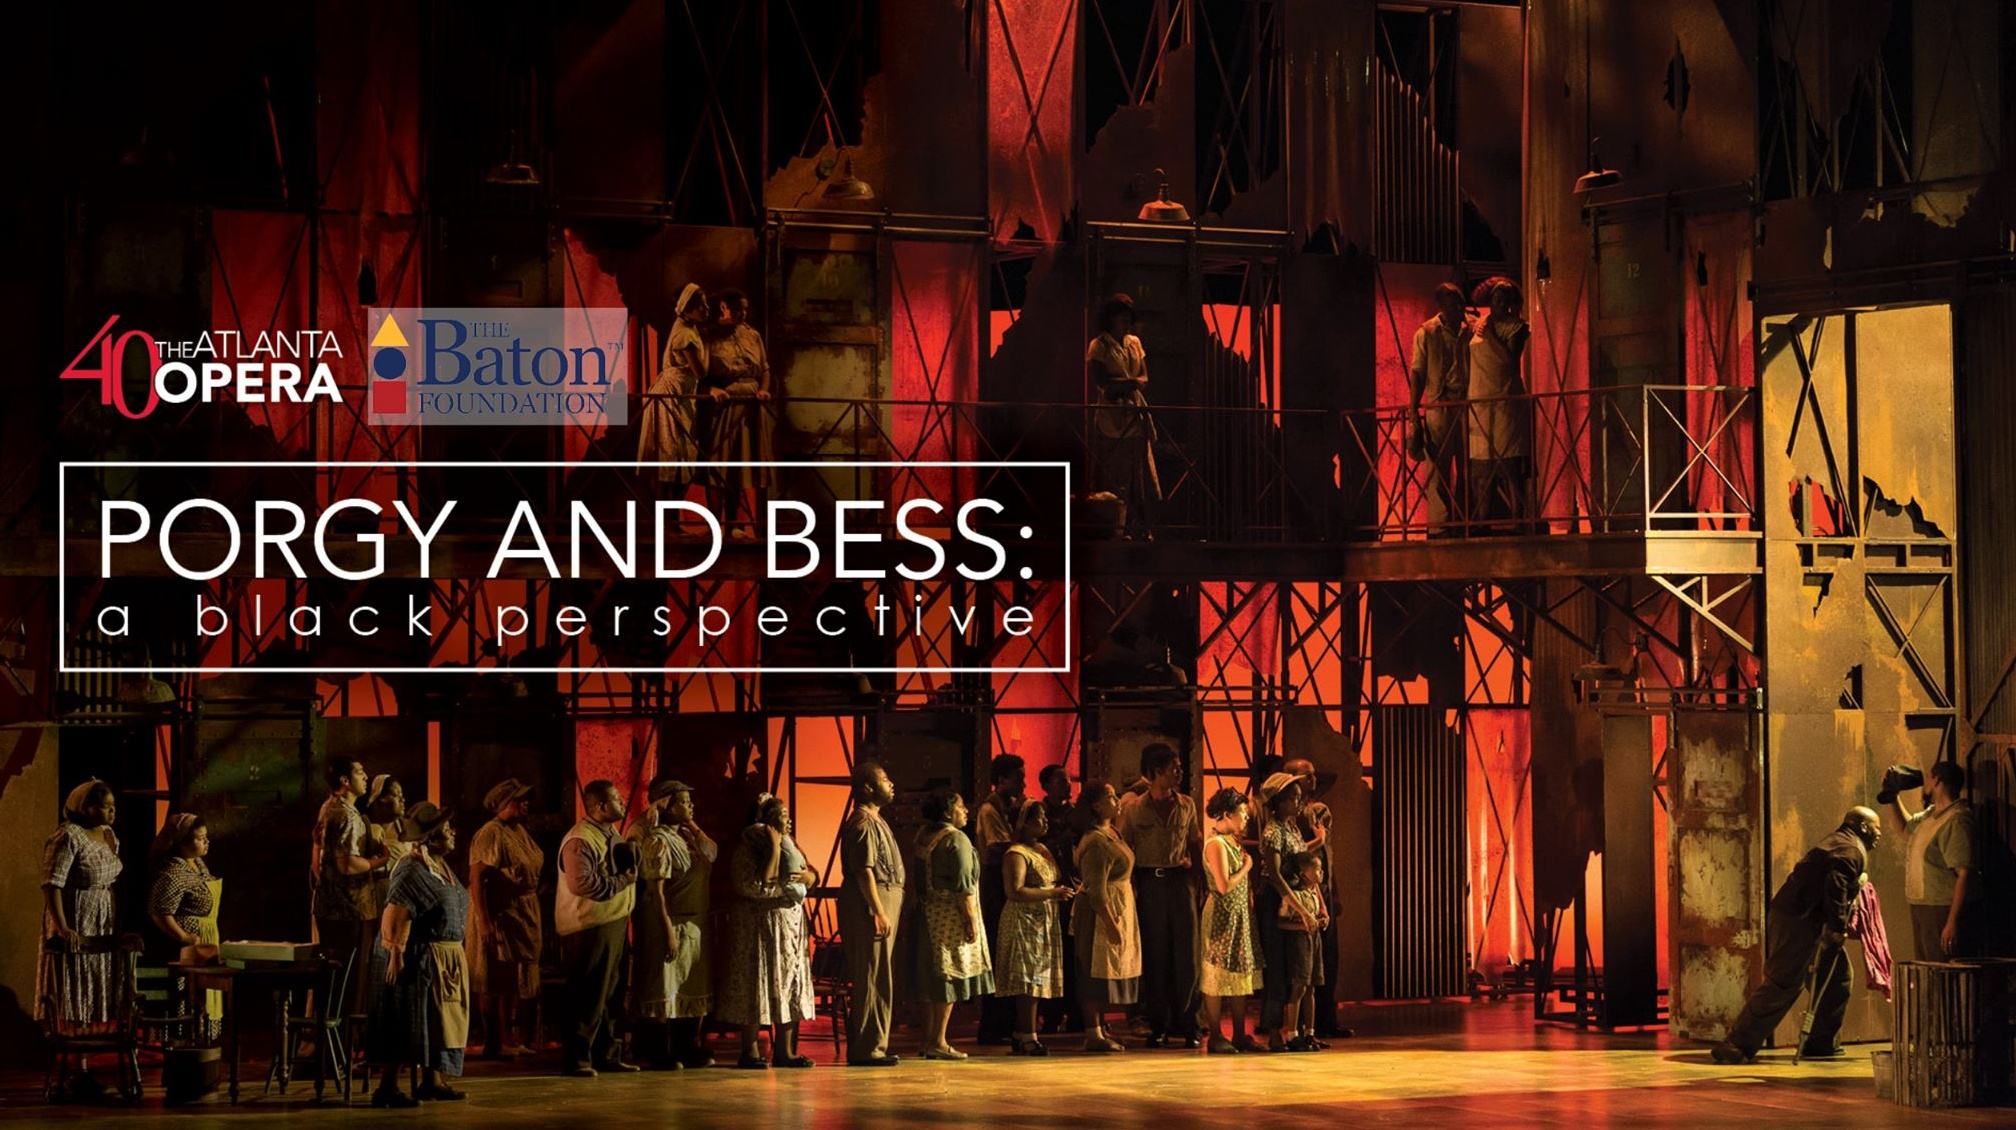 Porgy and Bess: A Black Perspective